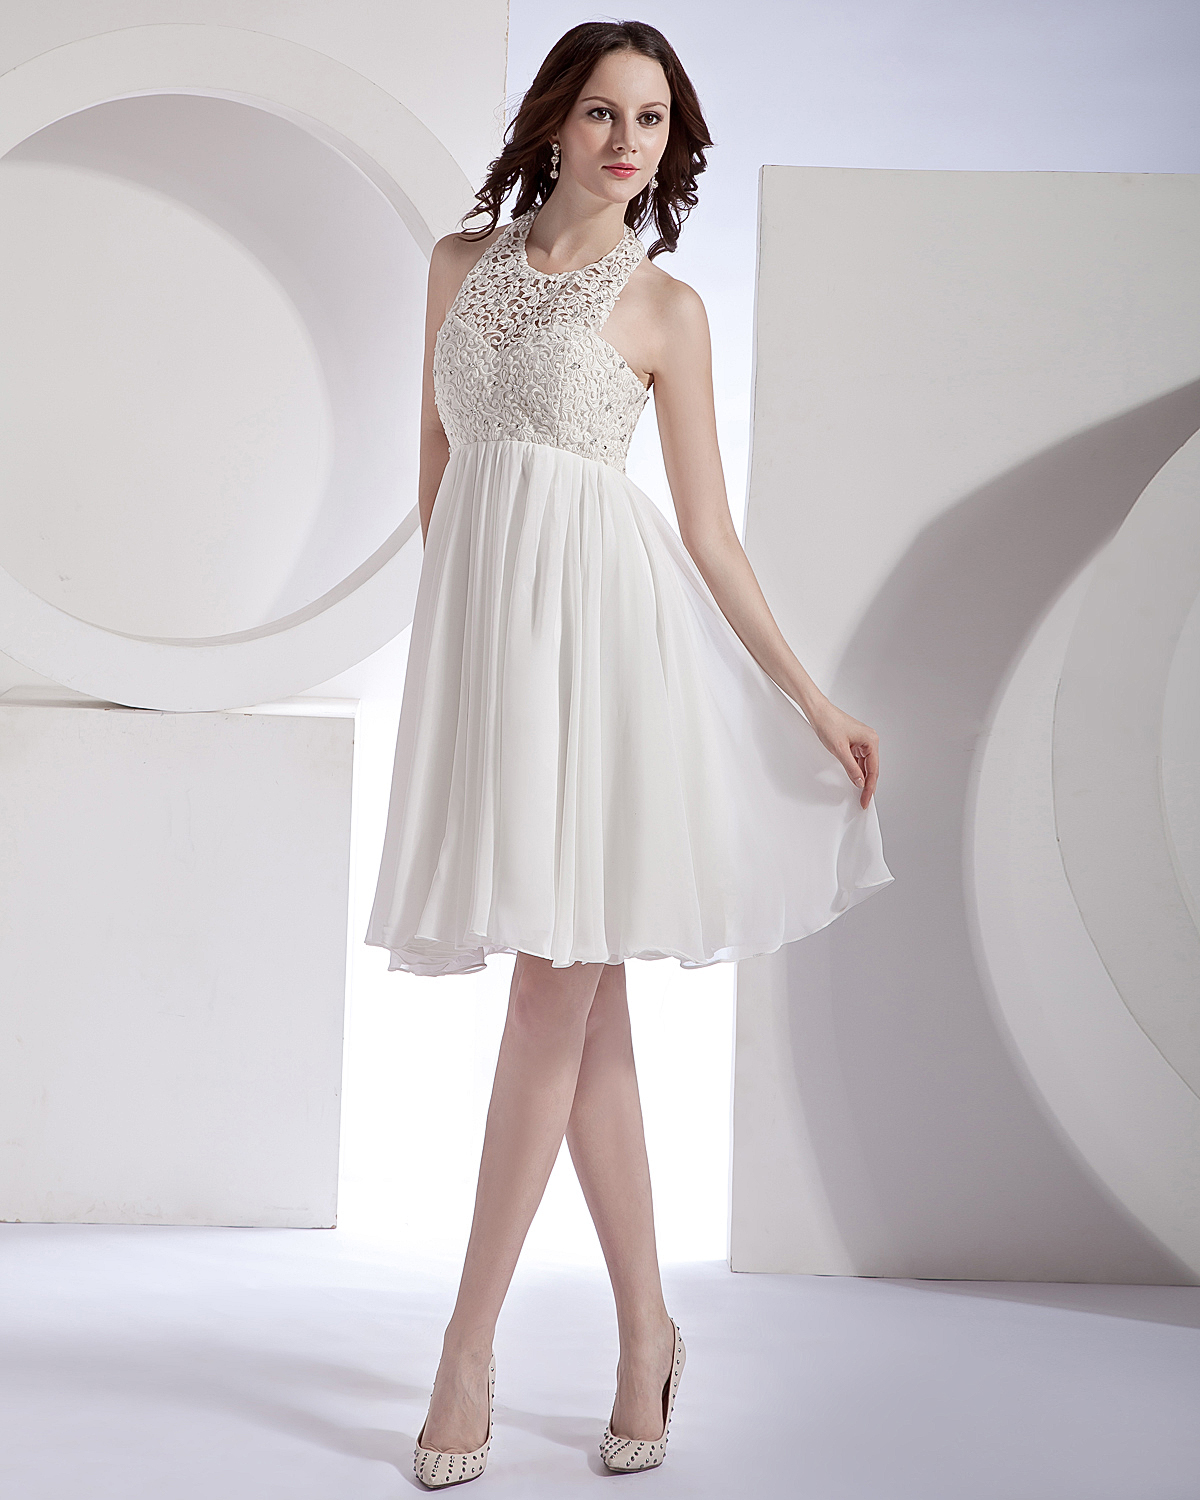 Hollow out organza chiffon lace halter mini bridal gown for Chiffon tulle wedding dress